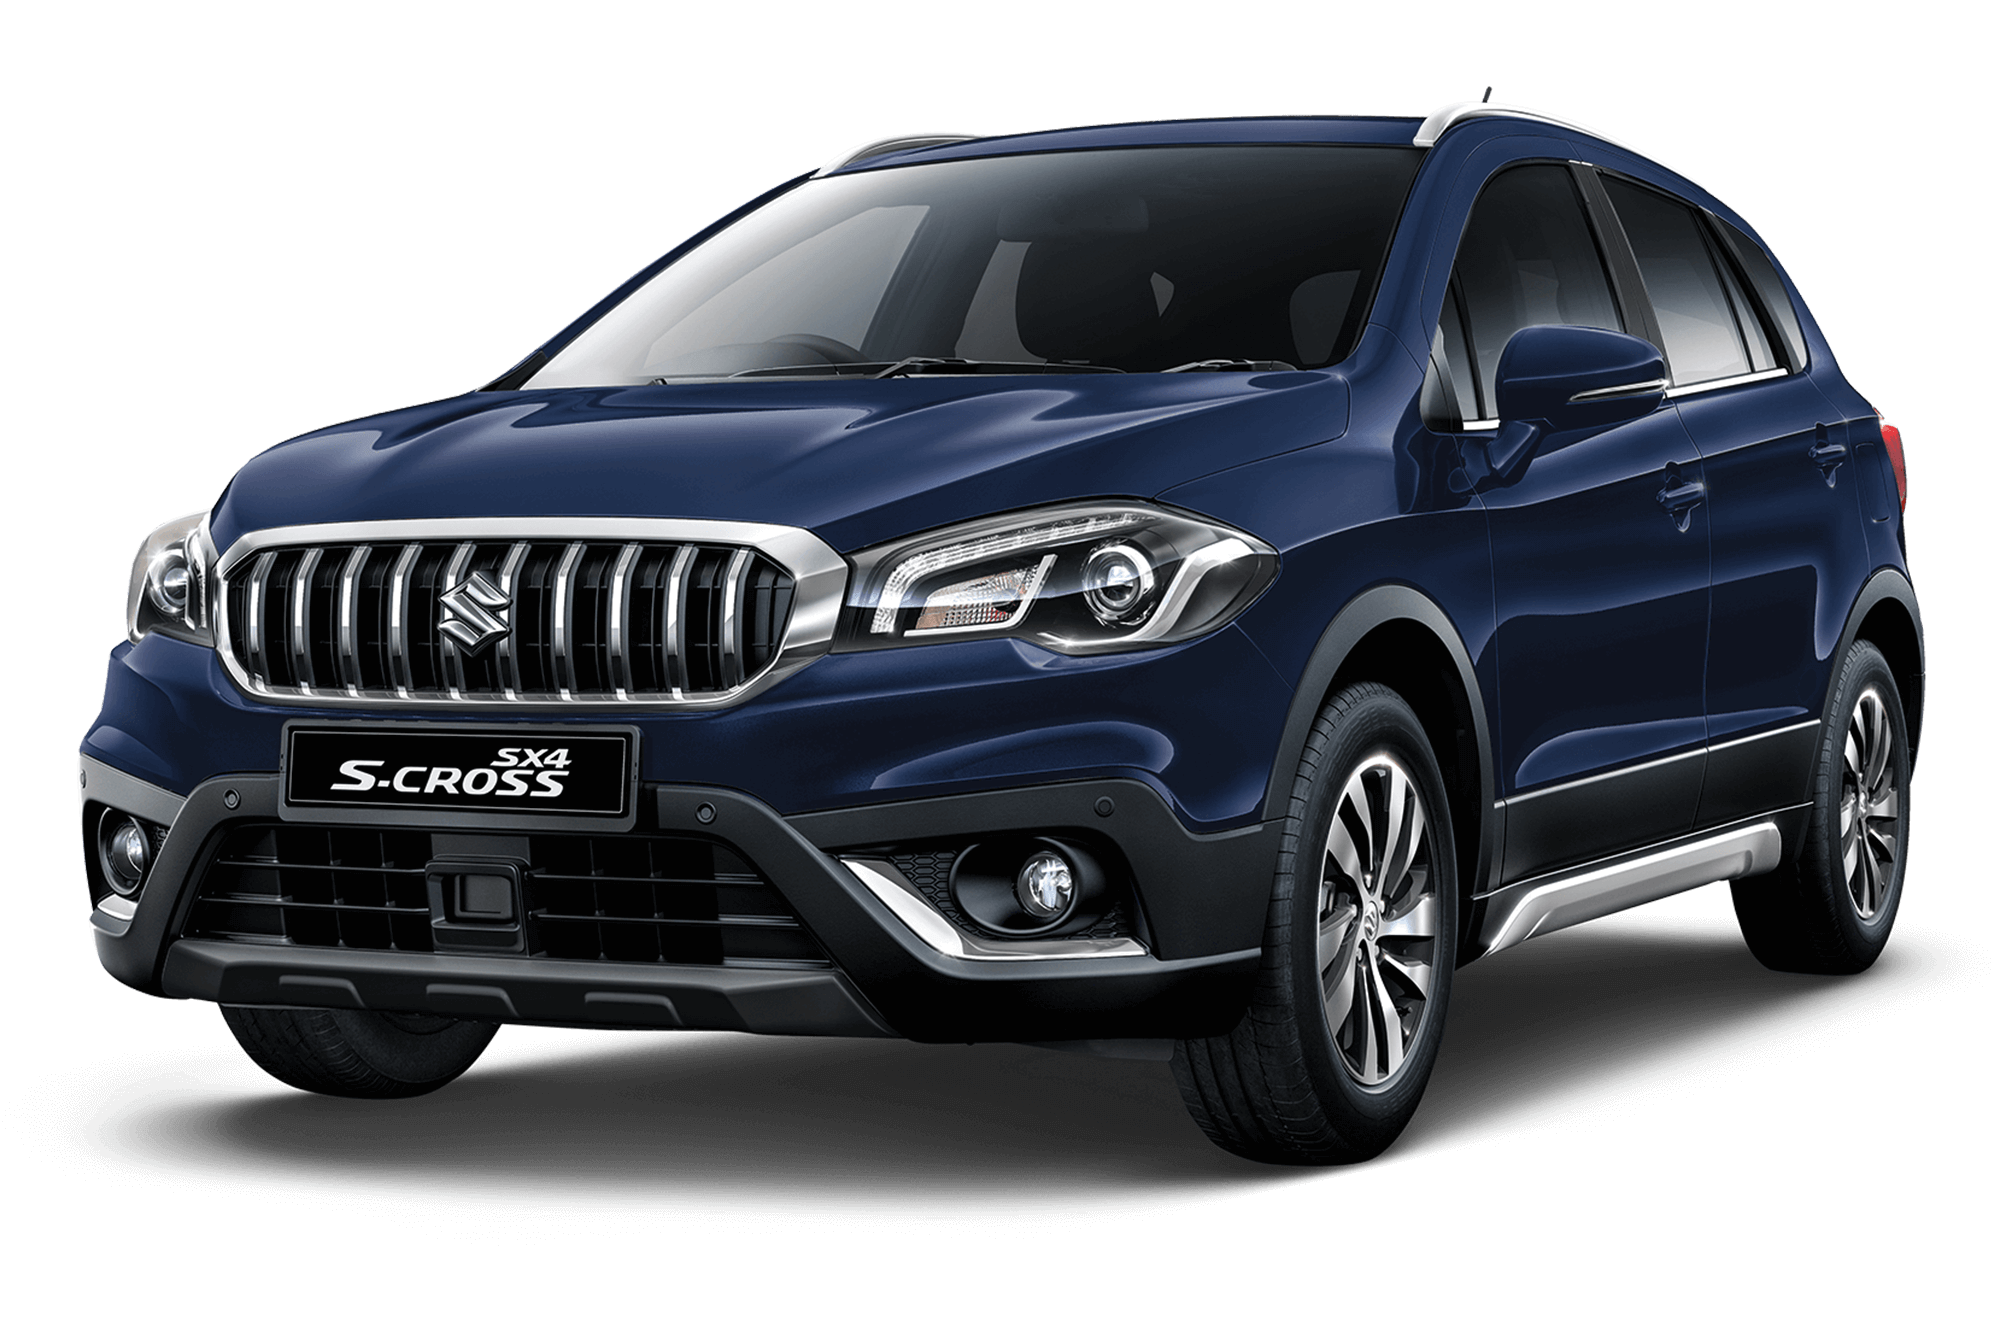 new suzuki sx4 s cross sz t specs price suzuki cars uk. Black Bedroom Furniture Sets. Home Design Ideas